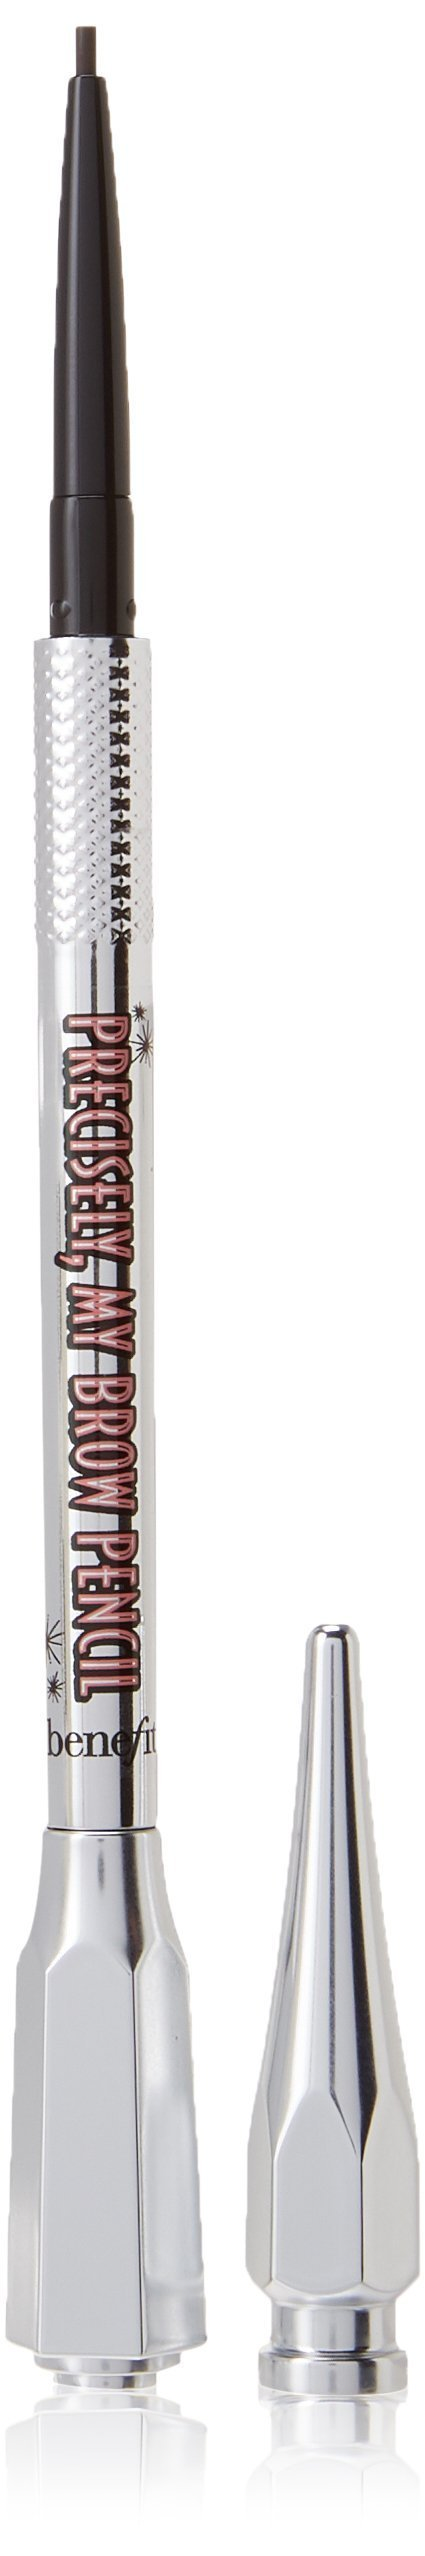 Benefit Precisely My Brow Pencil Ultra Fine Brow Defining, No. 4 Medium, 0.002 Ounce